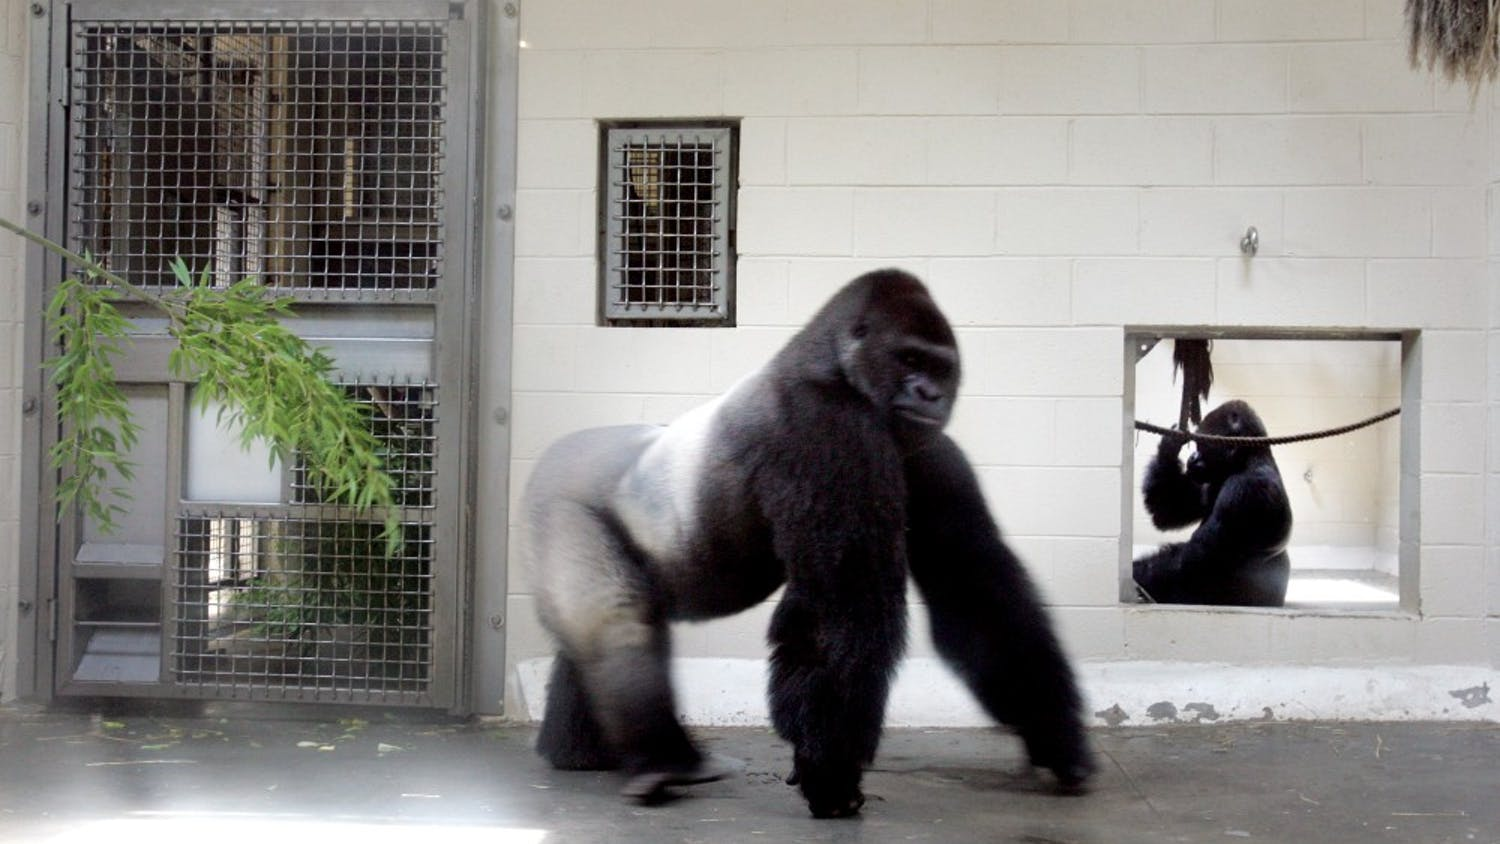 A gorilla walks his enclosure at the Riverbanks Zoo and Garden, Friday, June 12, 2009, in Columbia, South Carolina. One of the gorillas escaped from the zoo and injured an employee before returning to its enclosure, zoo spokeswoman Lindsay Burke said. (Gerry Melendez/The State/MCT)